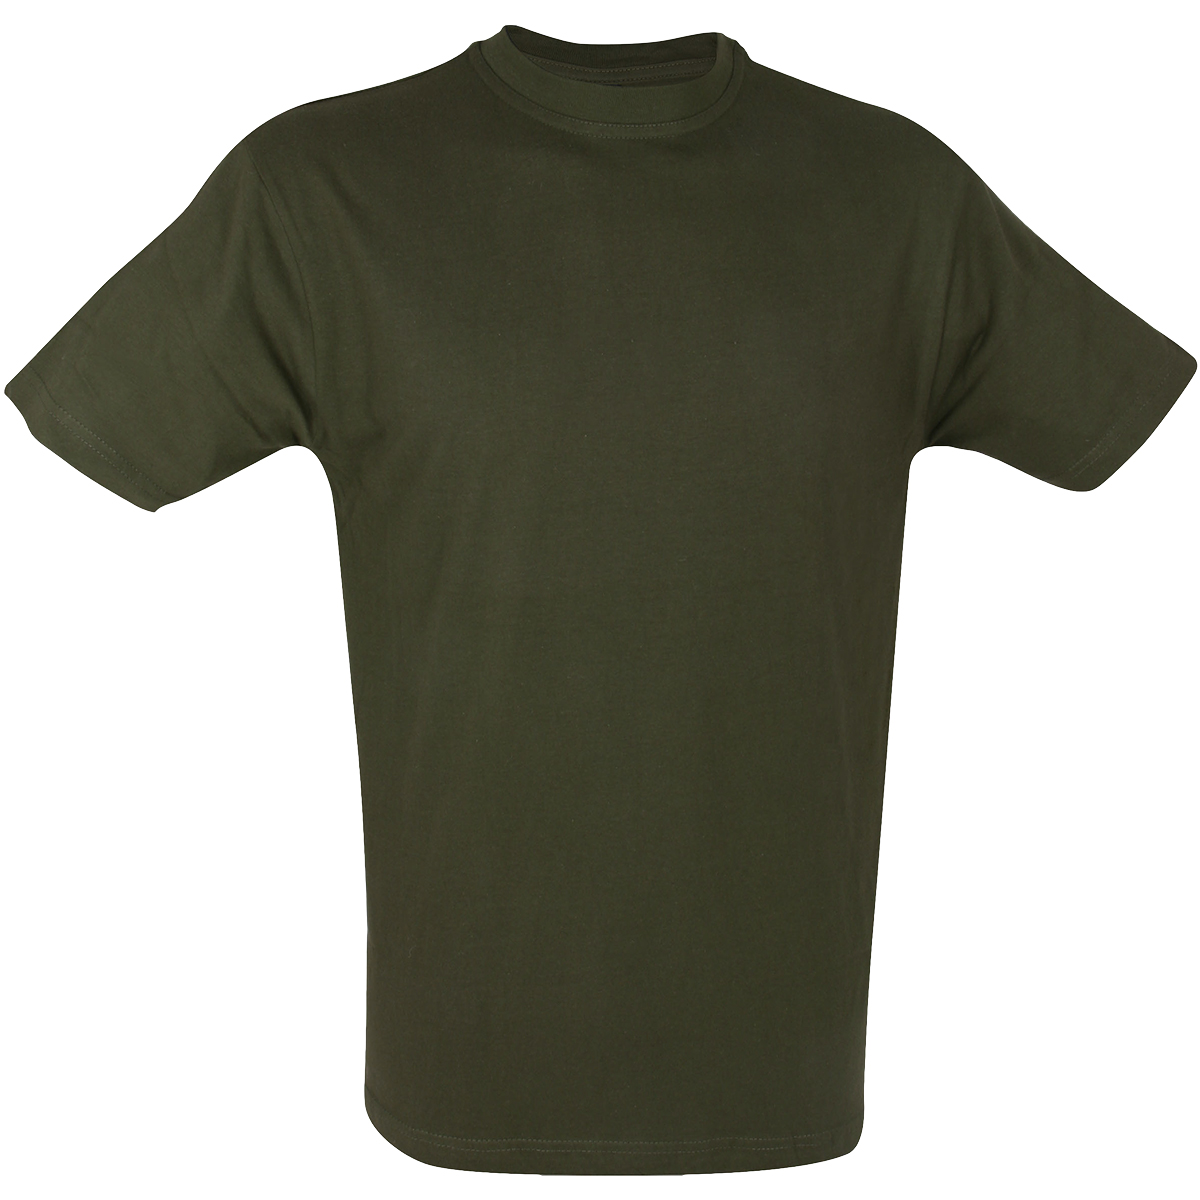 T Short Mil Com T Shirt Olive Green T Shirts And Vests Military 1st